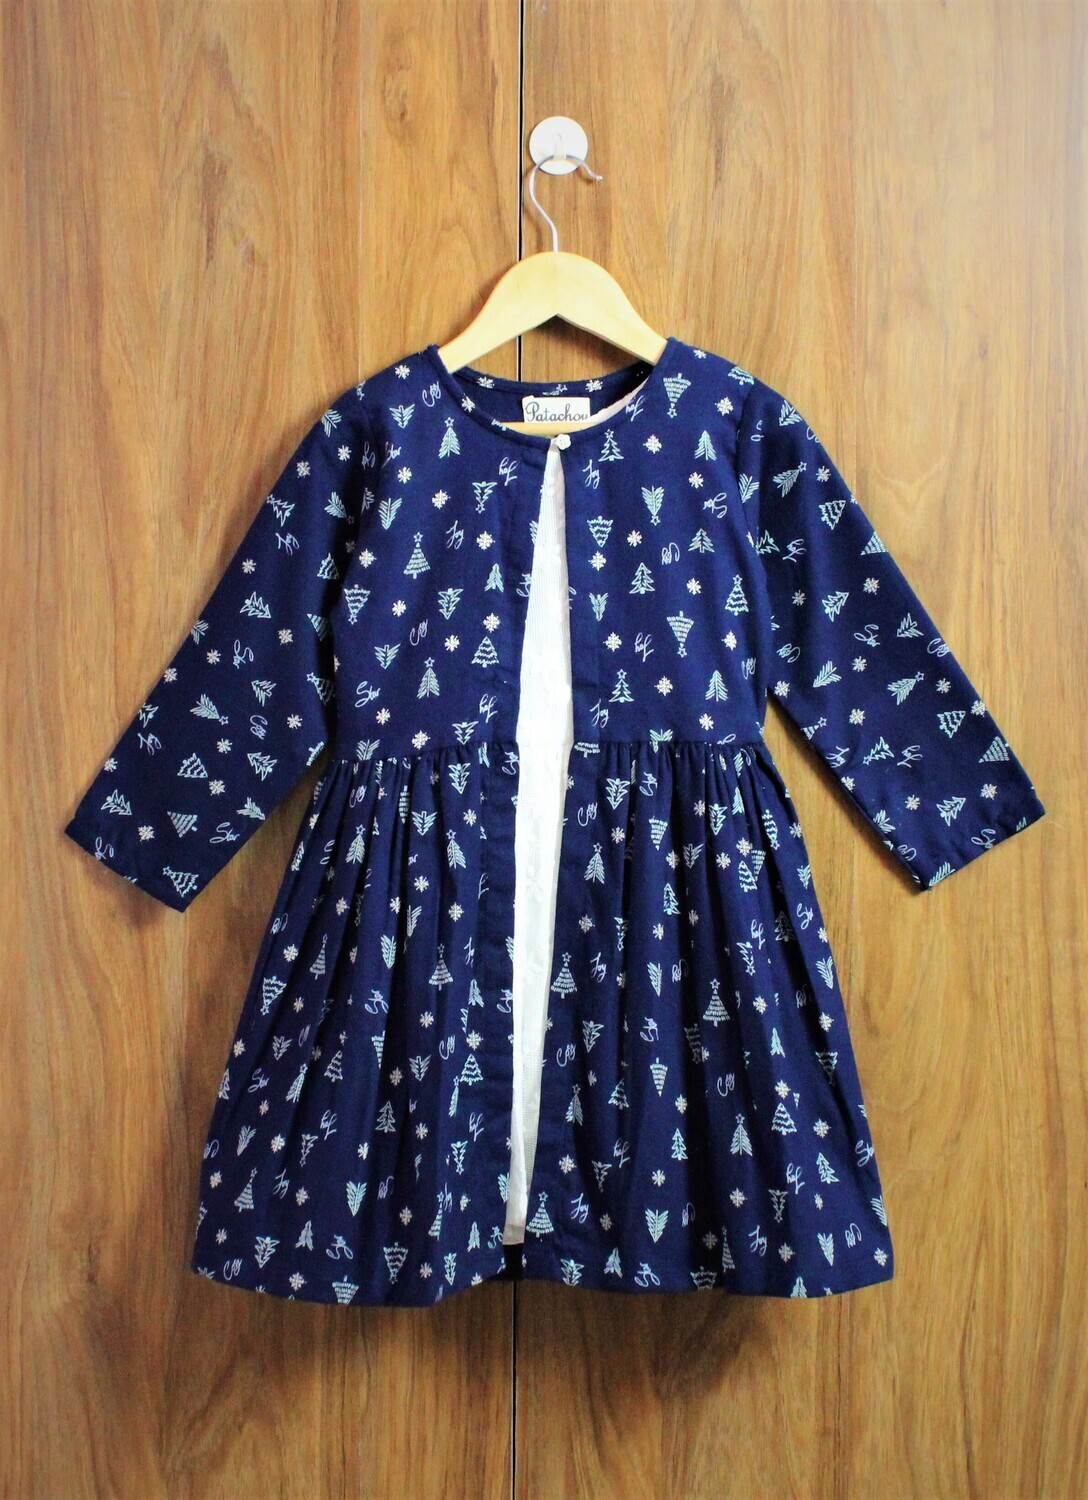 Full jacket with frocks(4 to 10-12 Yrs.)